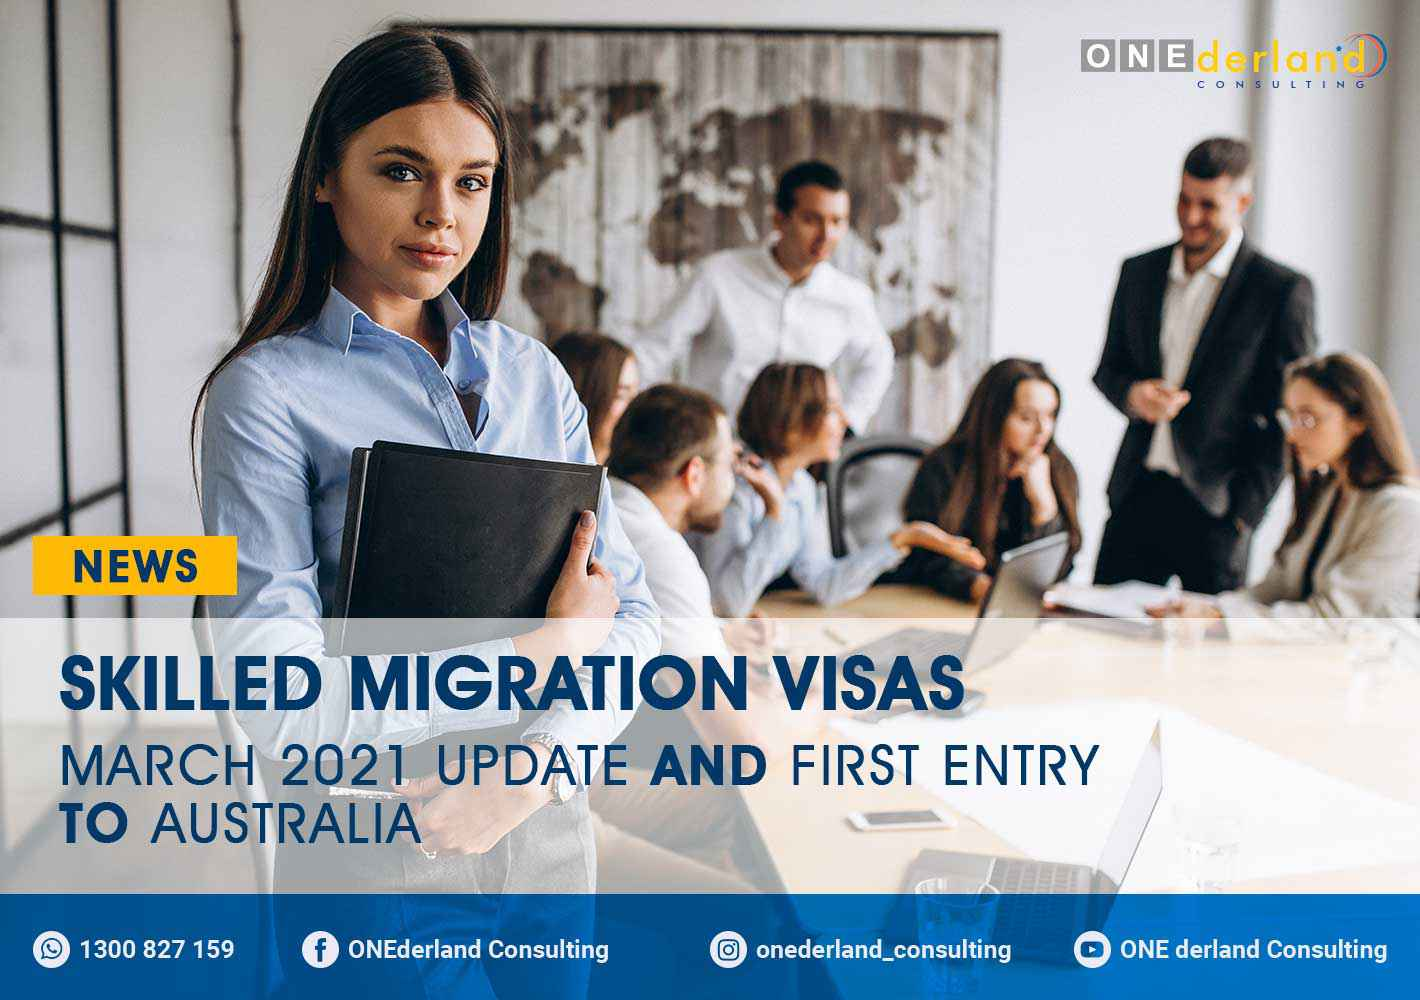 COVID-19 MARCH 2021 UPDATE: Skilled Migration Visas and First Entry to Australia